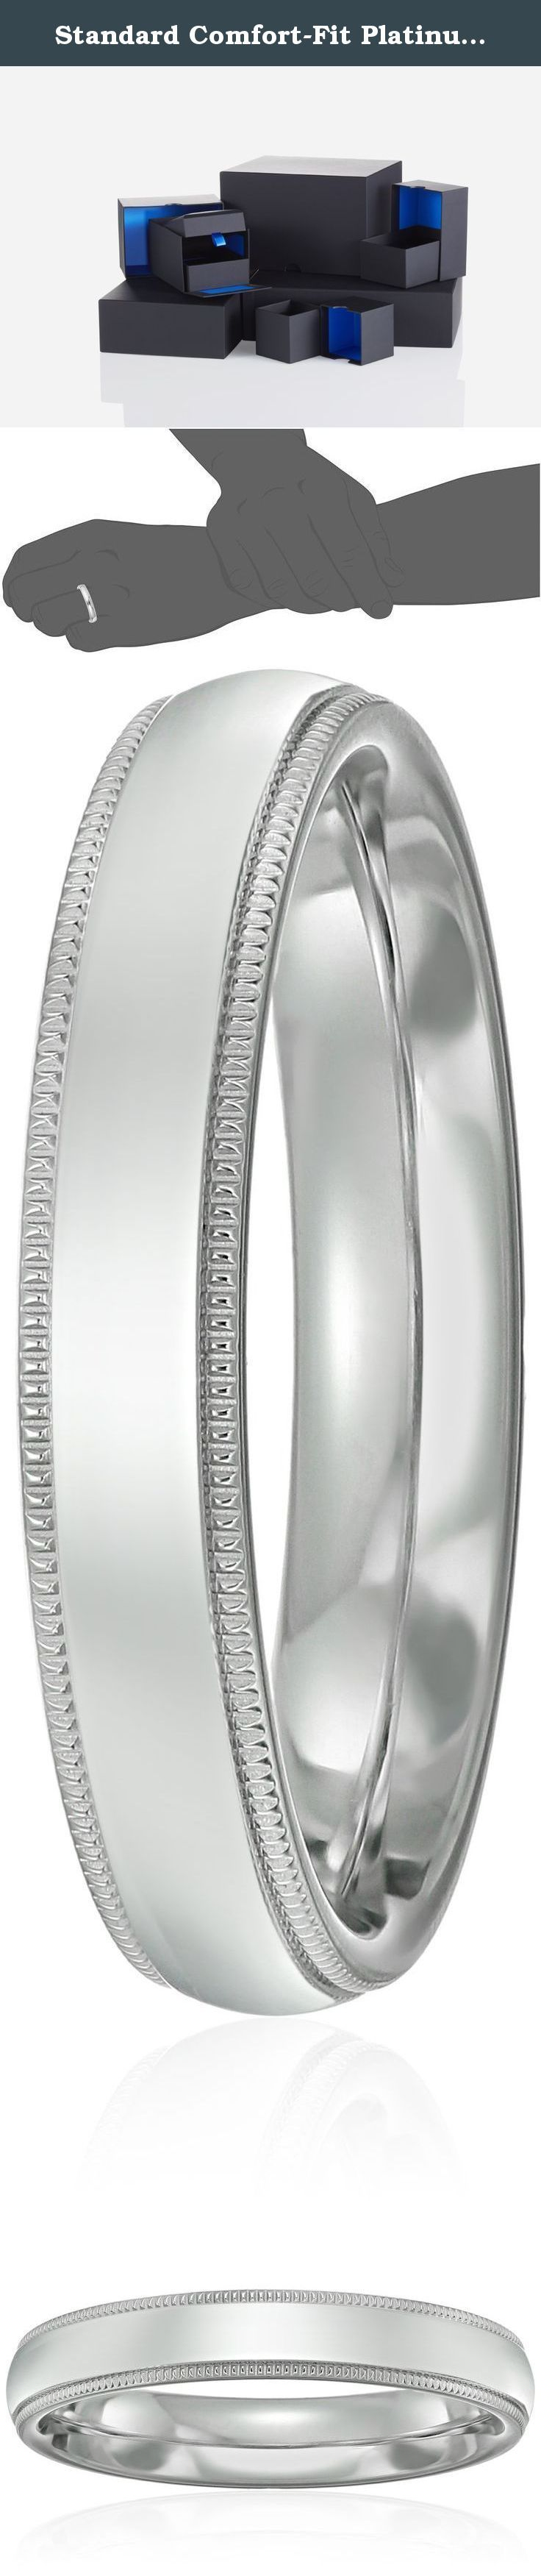 Standard Comfort-Fit Platinum Milgrain Band, 4mm, Size 8. Choose a solid, classic look with this 4mm comfort fit men's wedding band, crafted in strong and radiant 950 platinum. This handsome band has a bright polished finish with delicate milgrain detailing along the edges. The comfort fit design features a rounded polished interior that allows the ring to slide on easily and rest comfortably on the finger. Platinum is a beautiful and popular precious metal, valued for its extreme rarity…